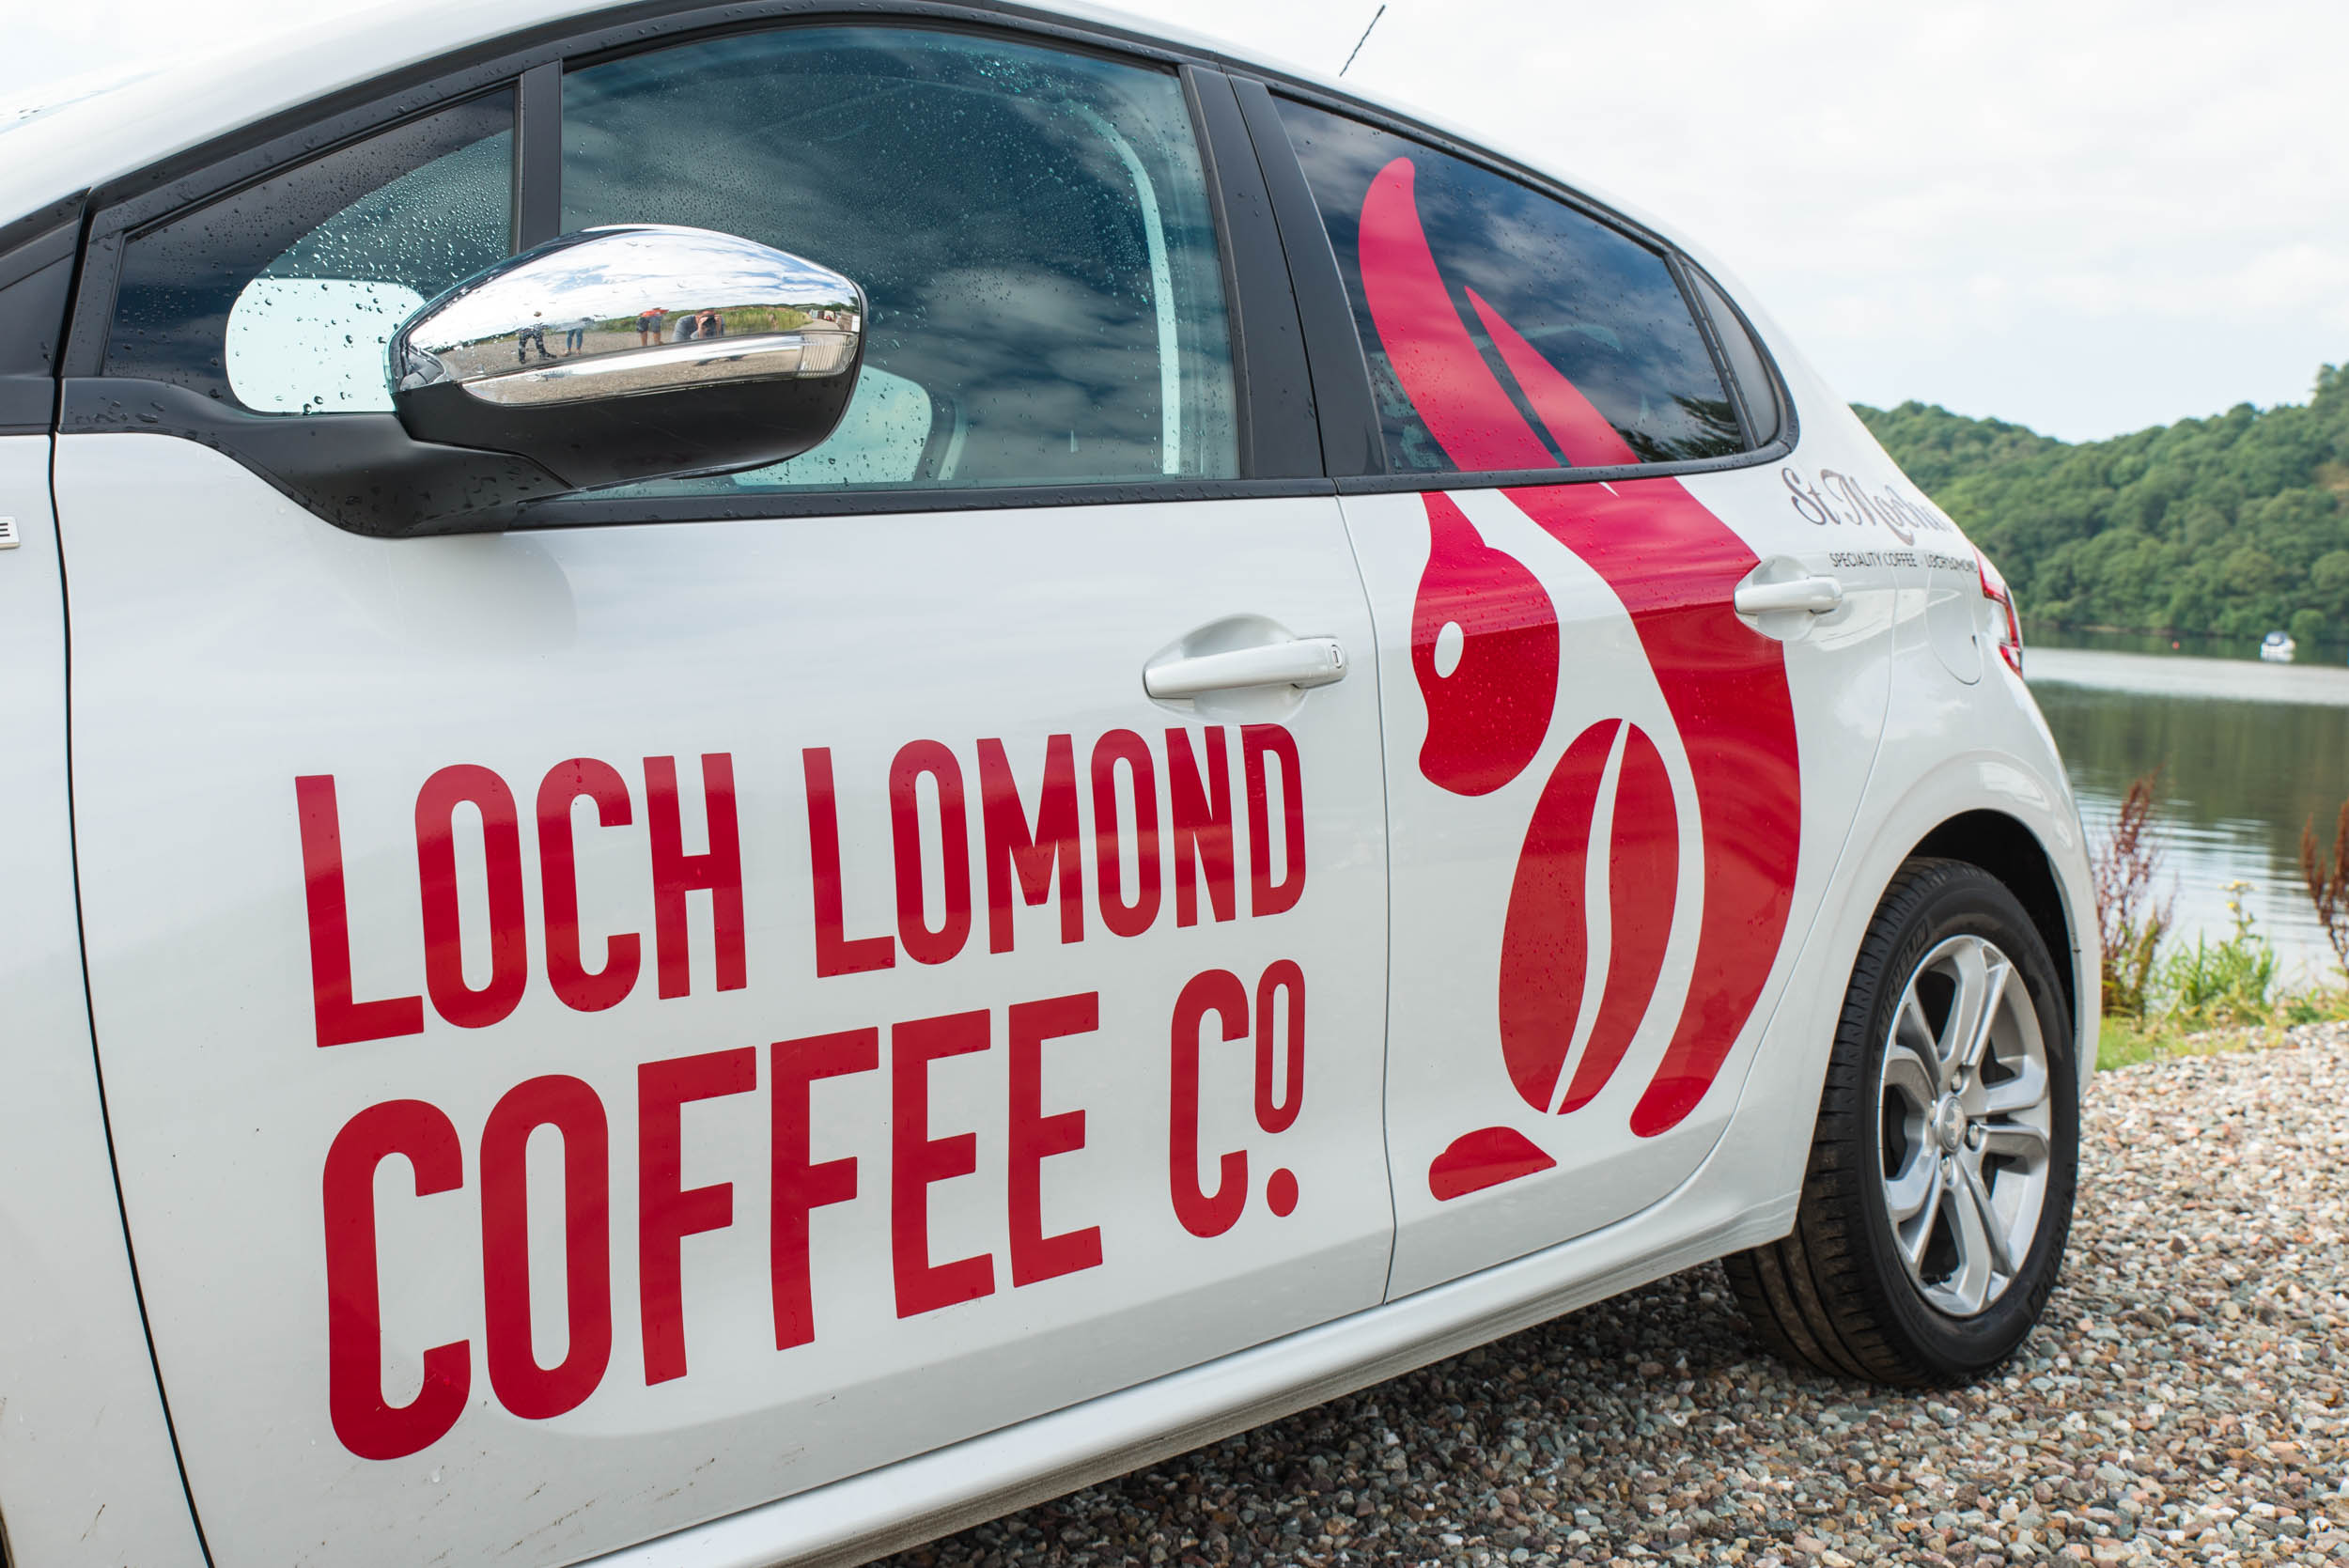 Loch-Lomond-Coffee-3247.jpg